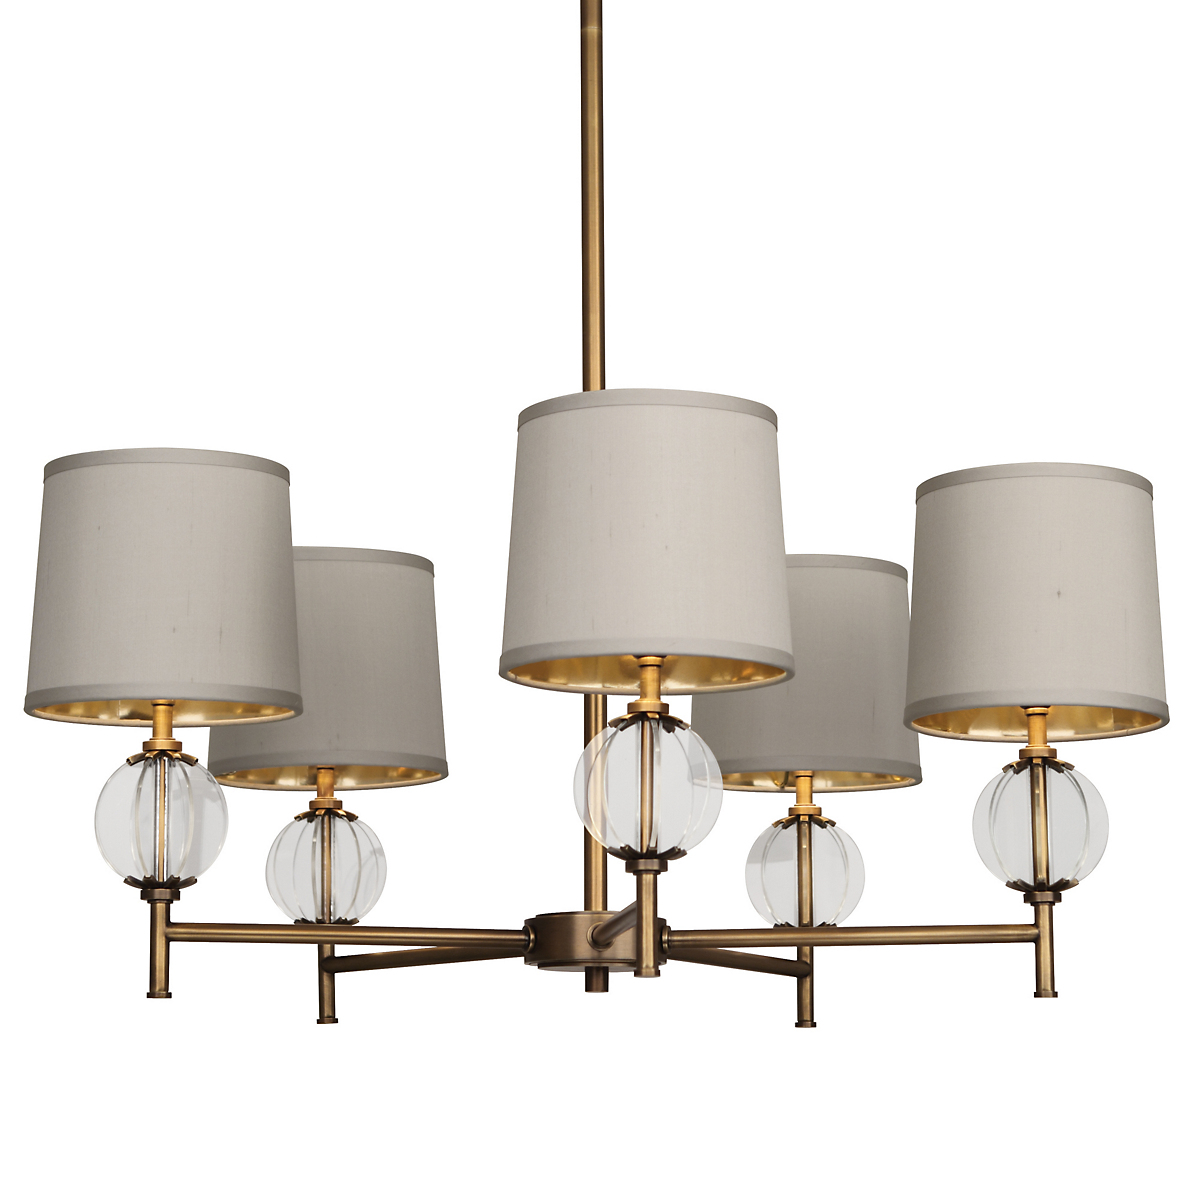 Latitude Chandelier, Brass